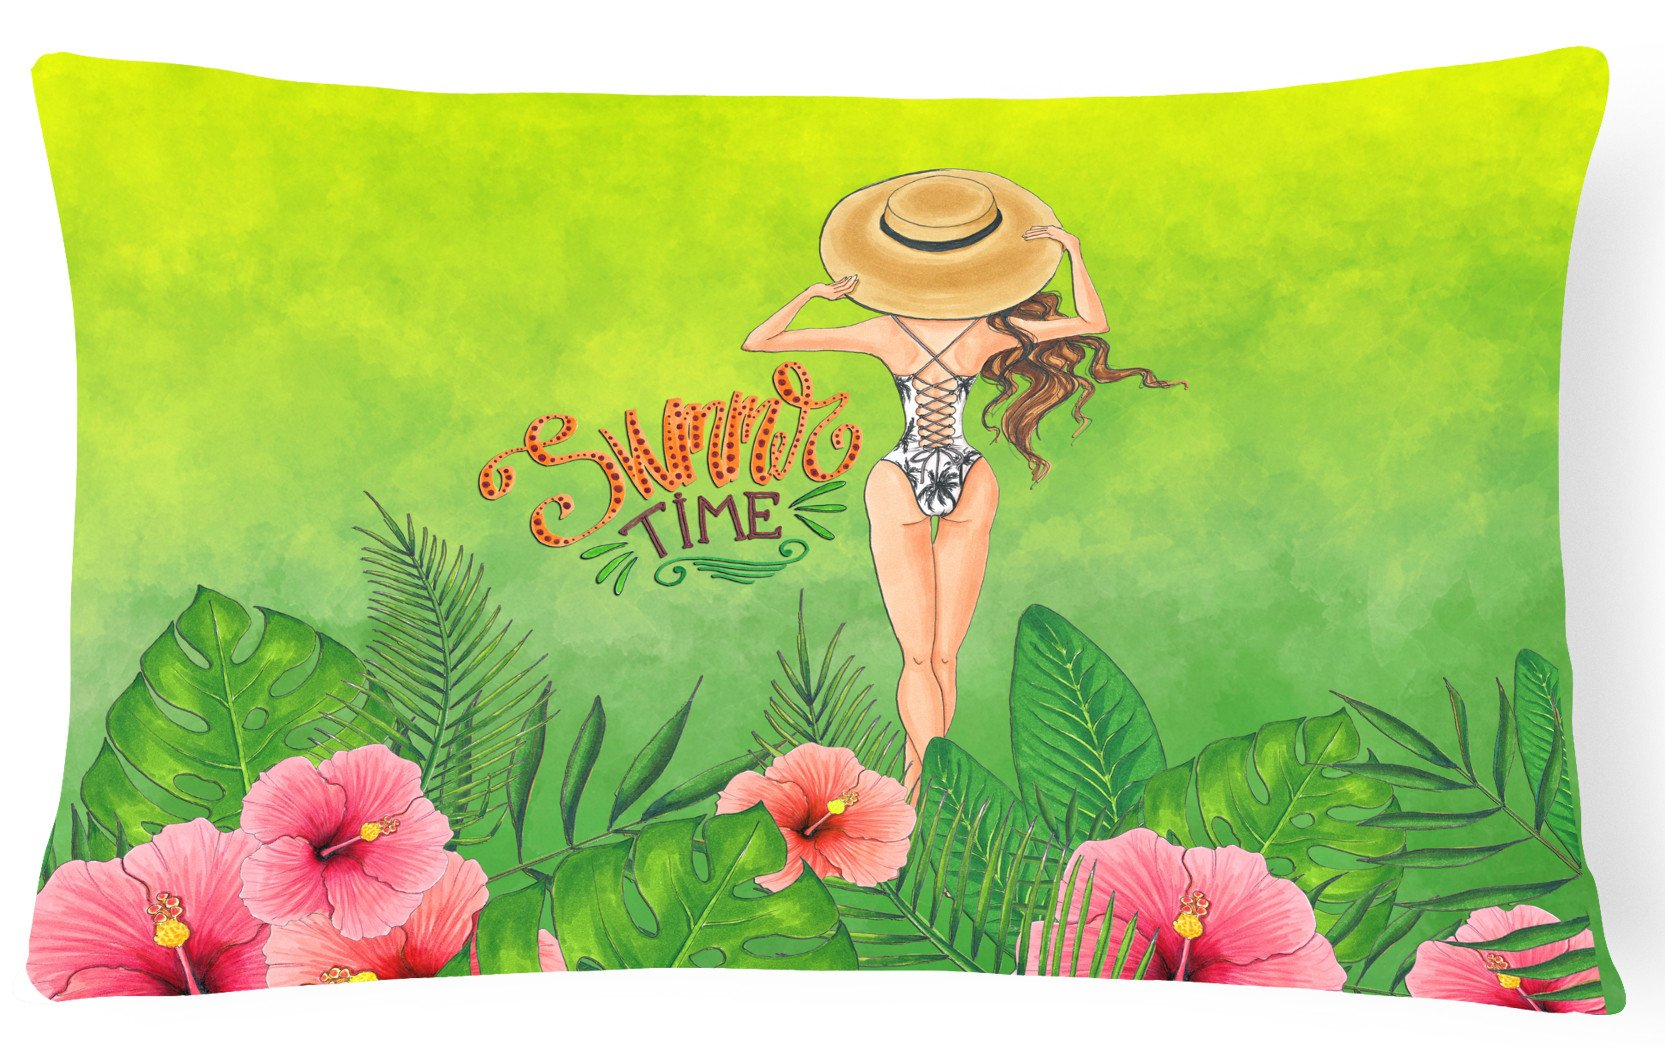 Summer Time Lady in Swimsuit Canvas Fabric Decorative Pillow BB7455PW1216 by Caroline's Treasures